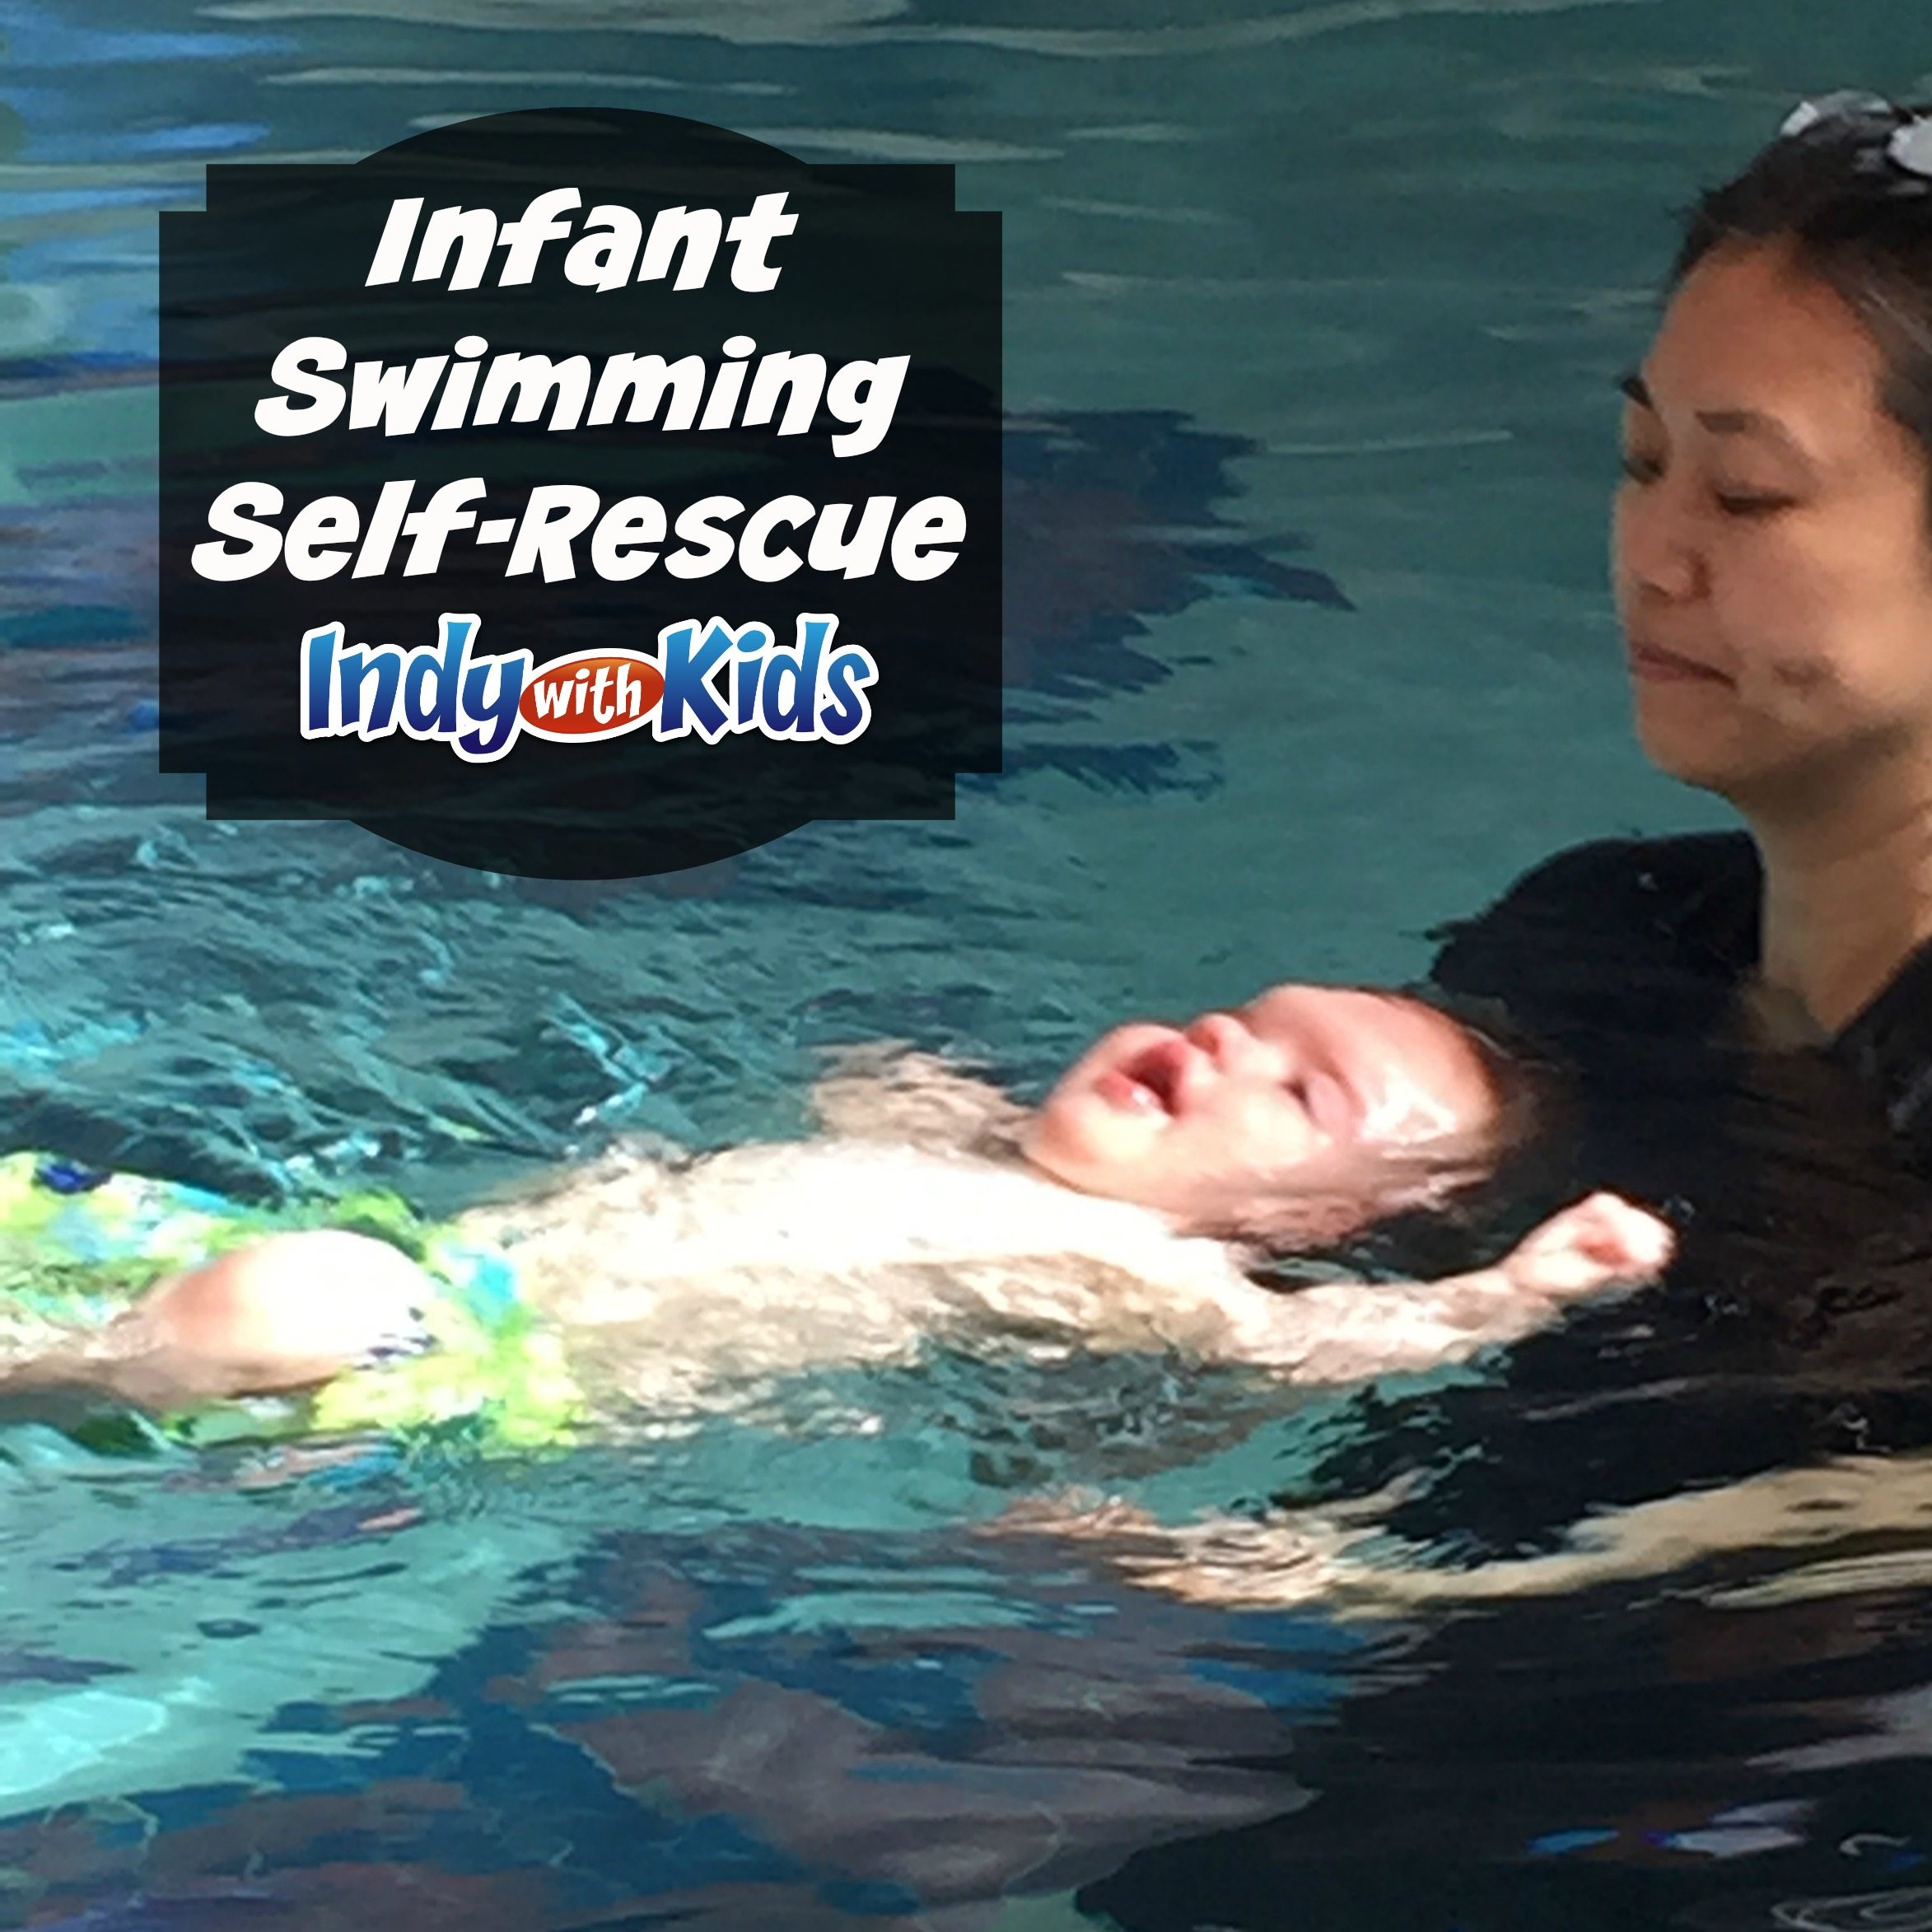 Teach Water Safety to Infants with Swimming Self-Rescue